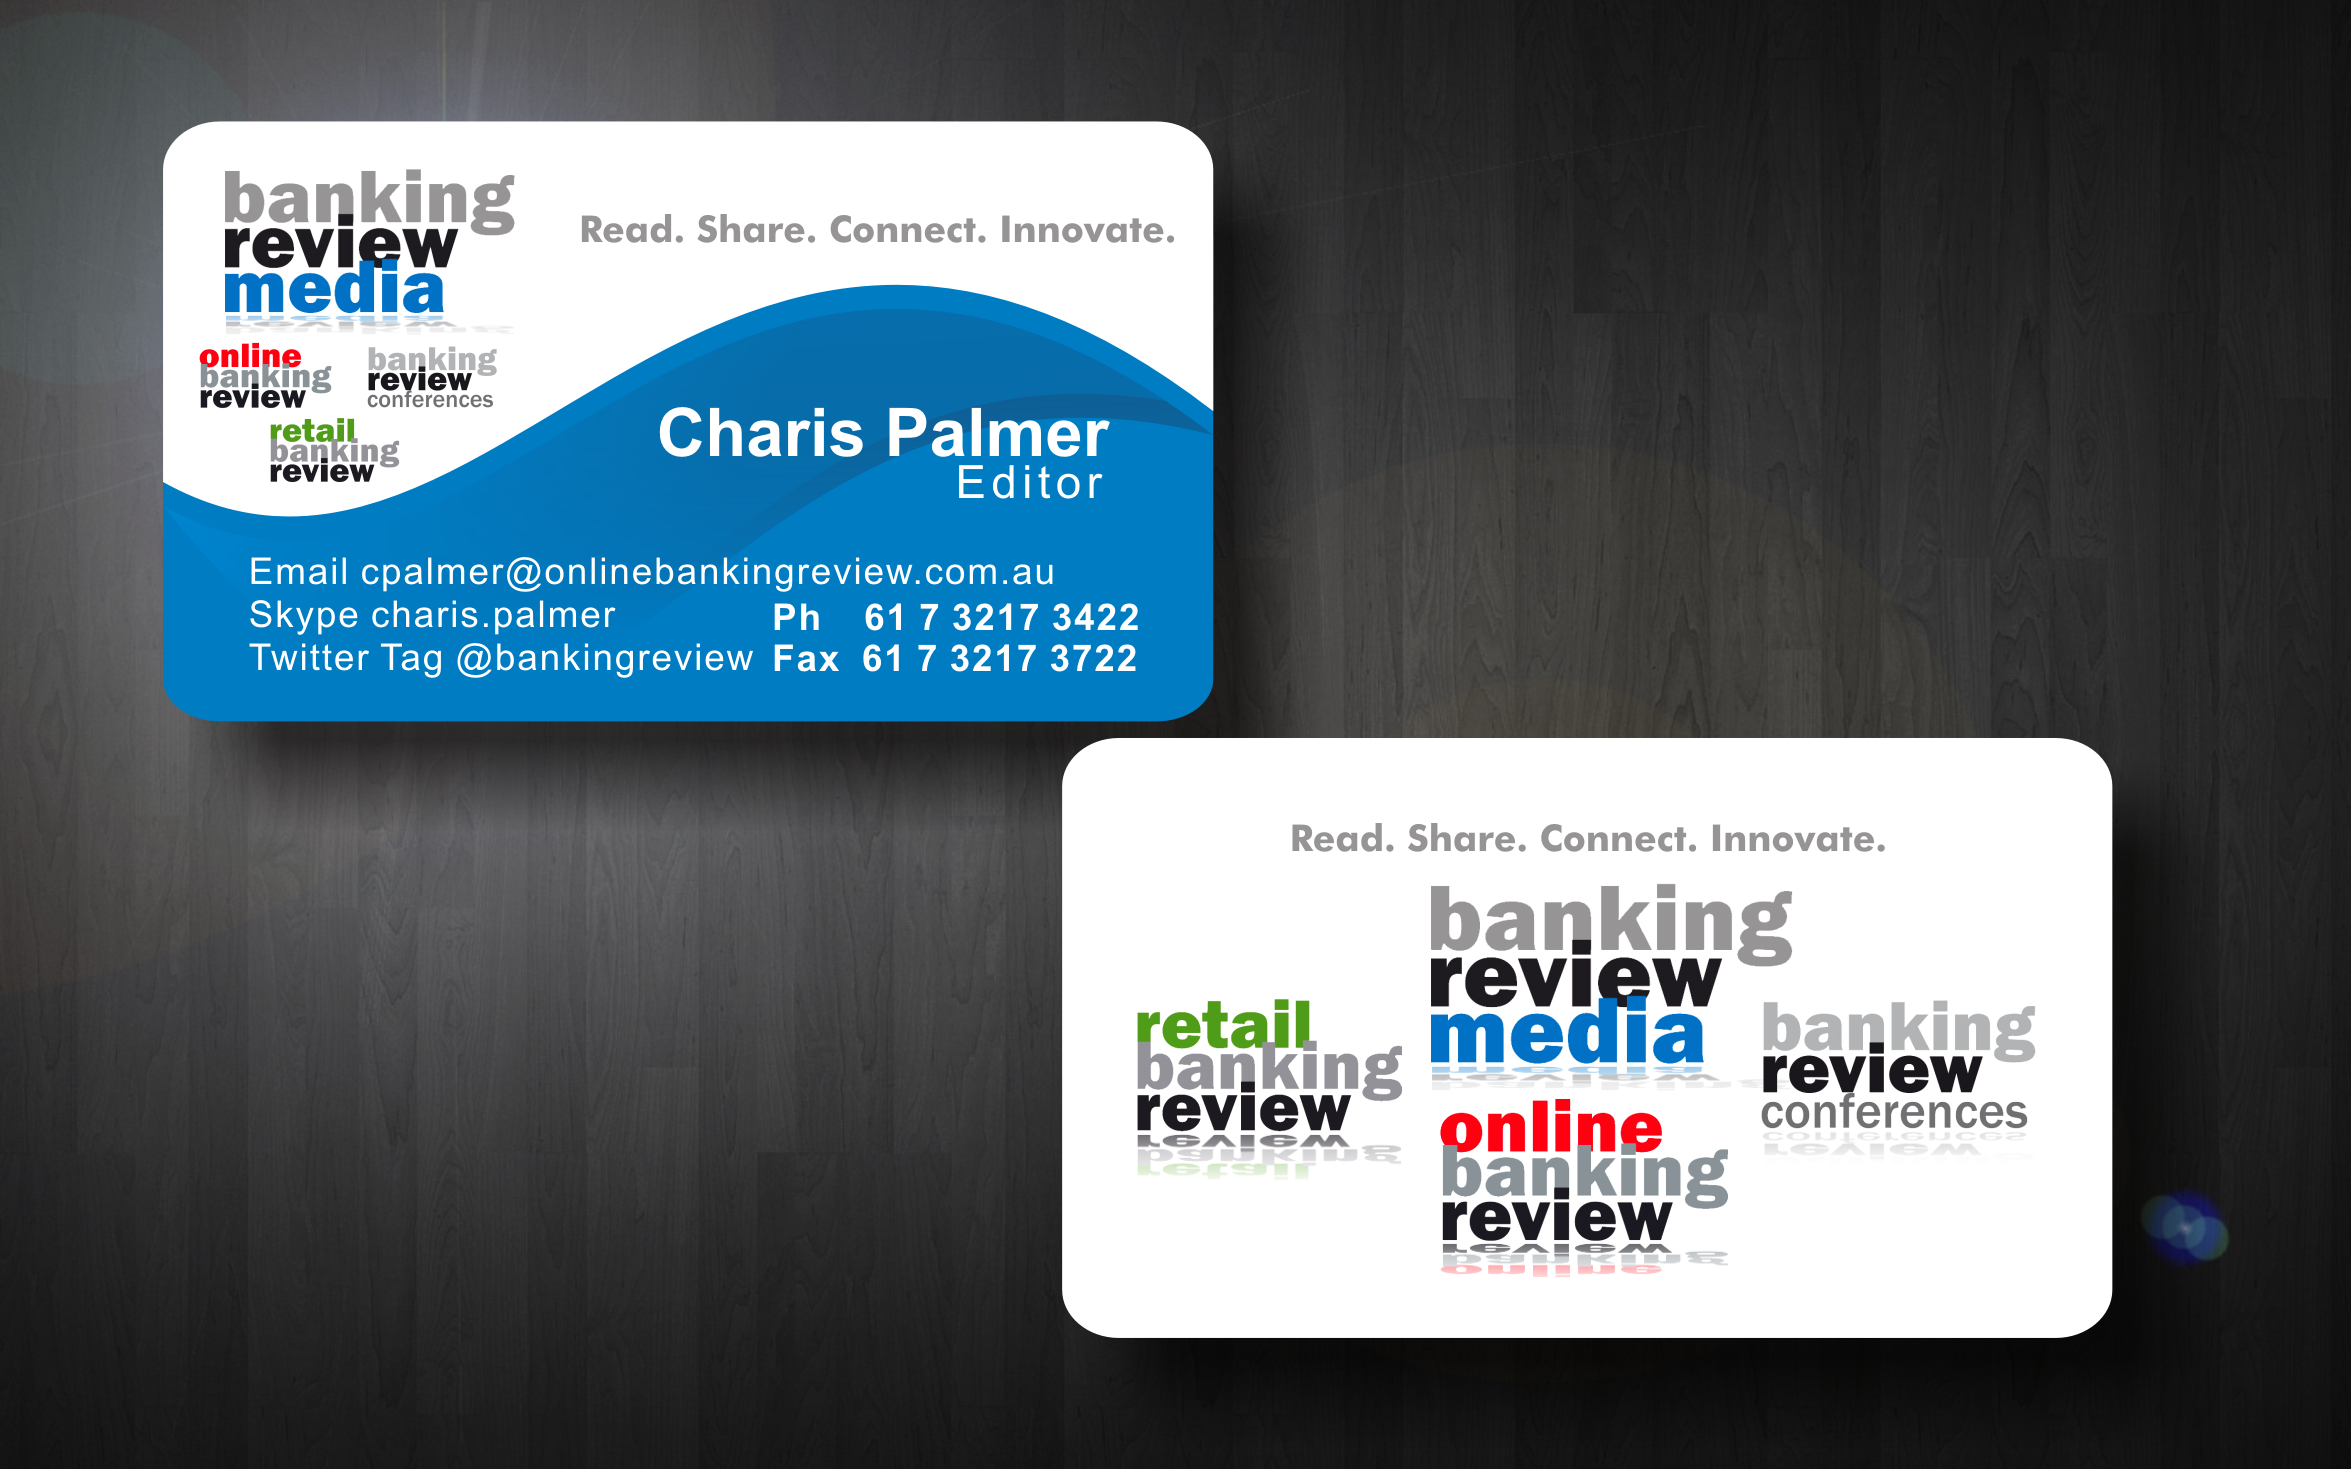 Business business card design for banking review media by siddkidd business business card design for banking review media in australia design 8942 reheart Gallery